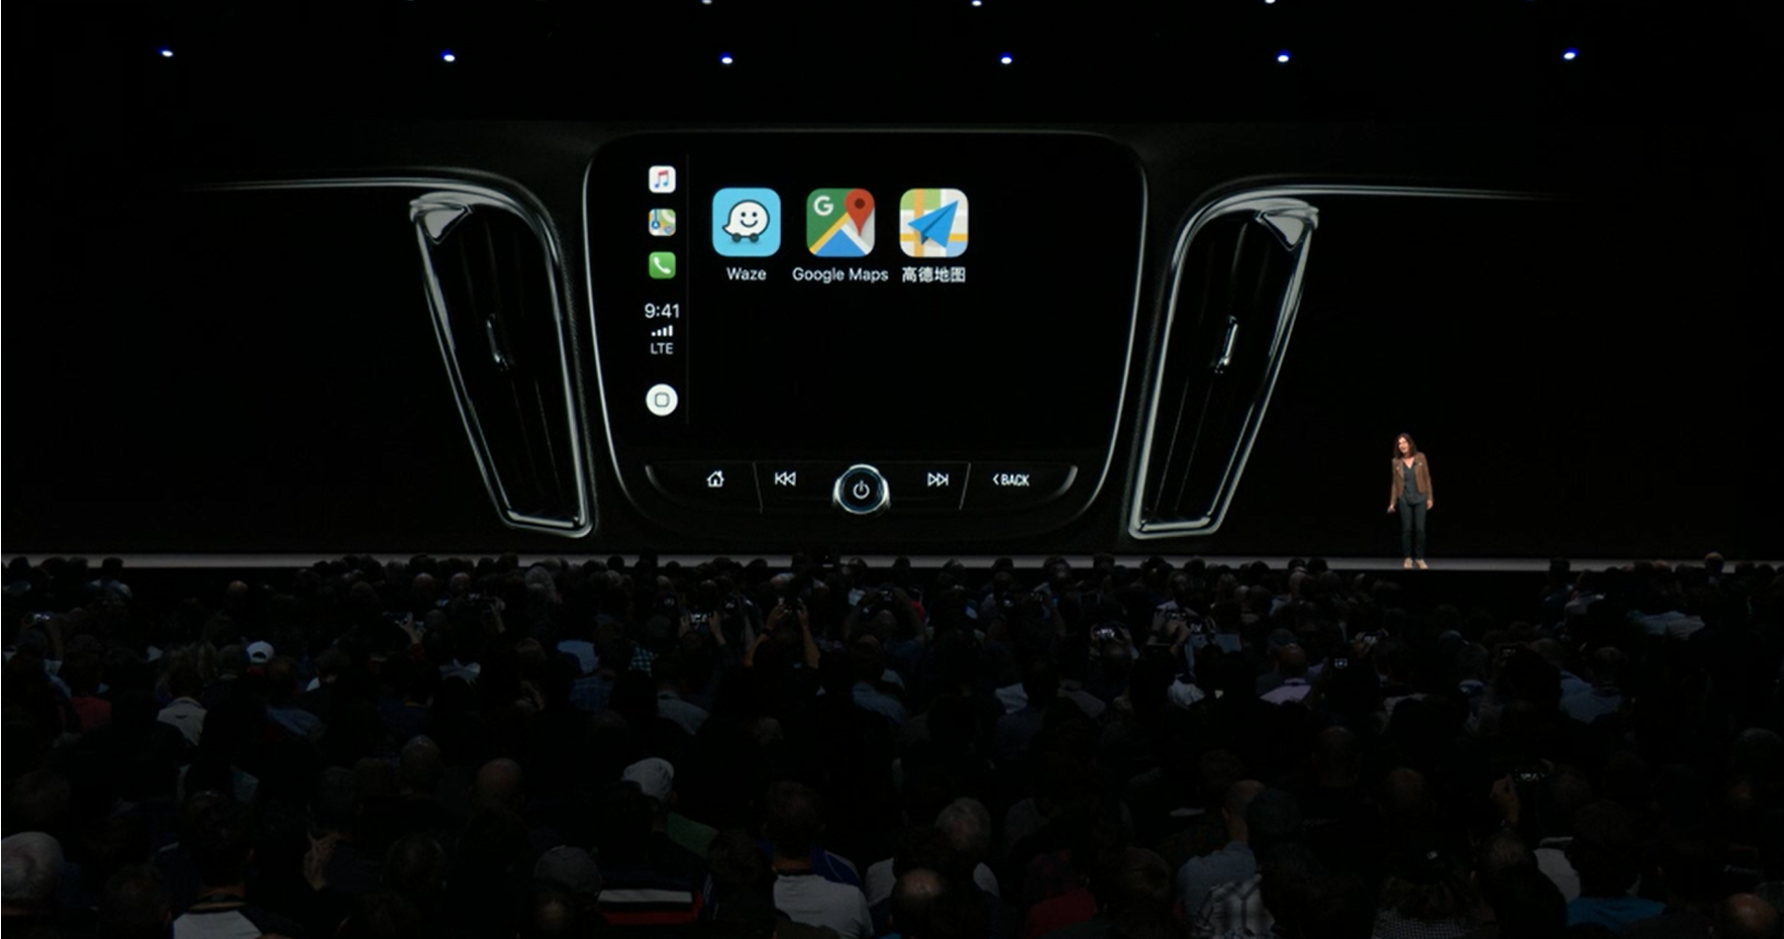 Google Maps is coming to CarPlay along with other navigation apps